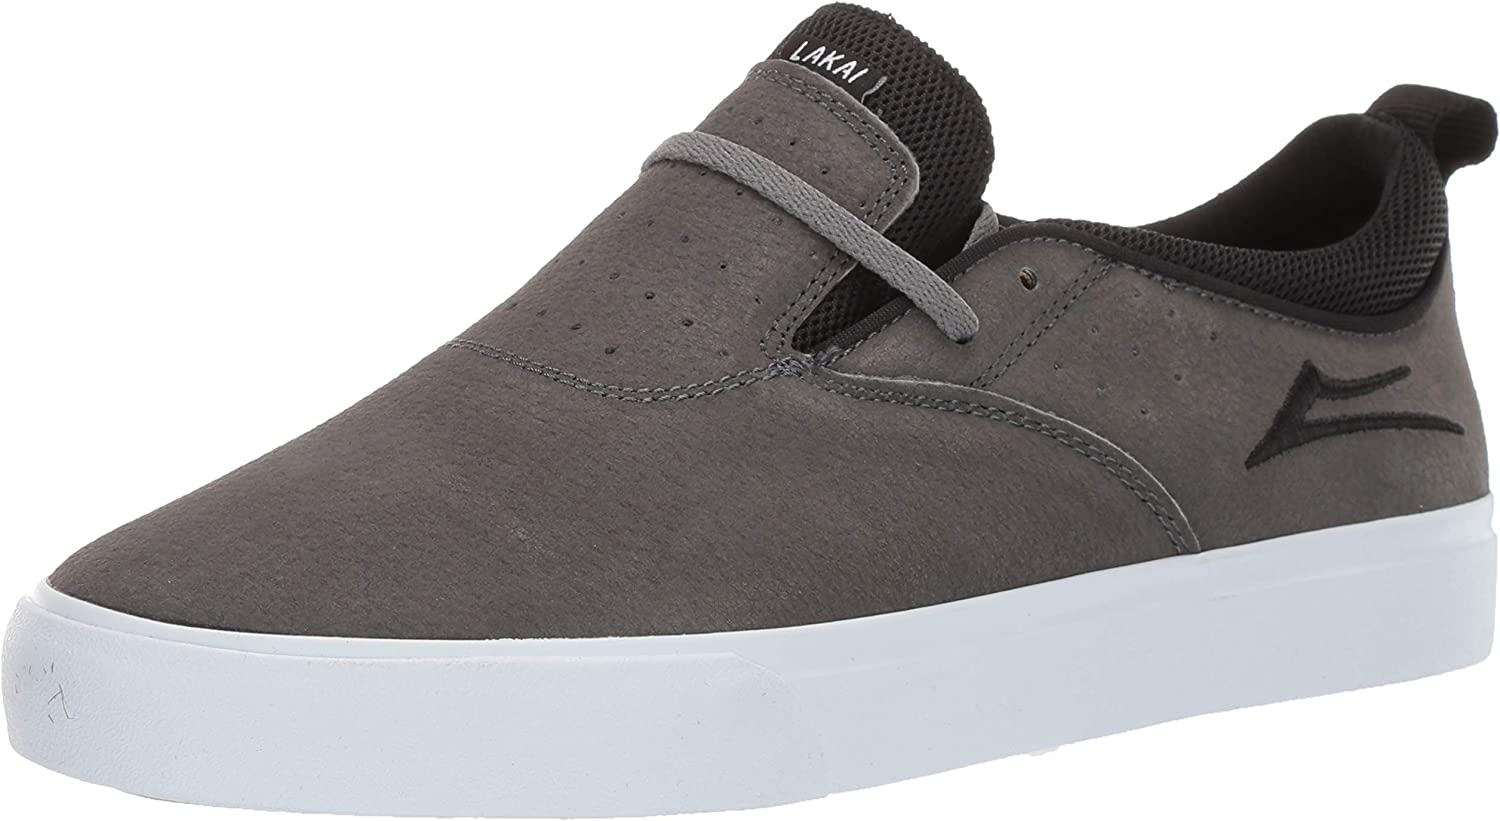 Lakai Unisex's Footwear Summer 2019 RILEY2 Charcoal SYN. Nubuck Size 11 Tennis shoes, Synthetic M US